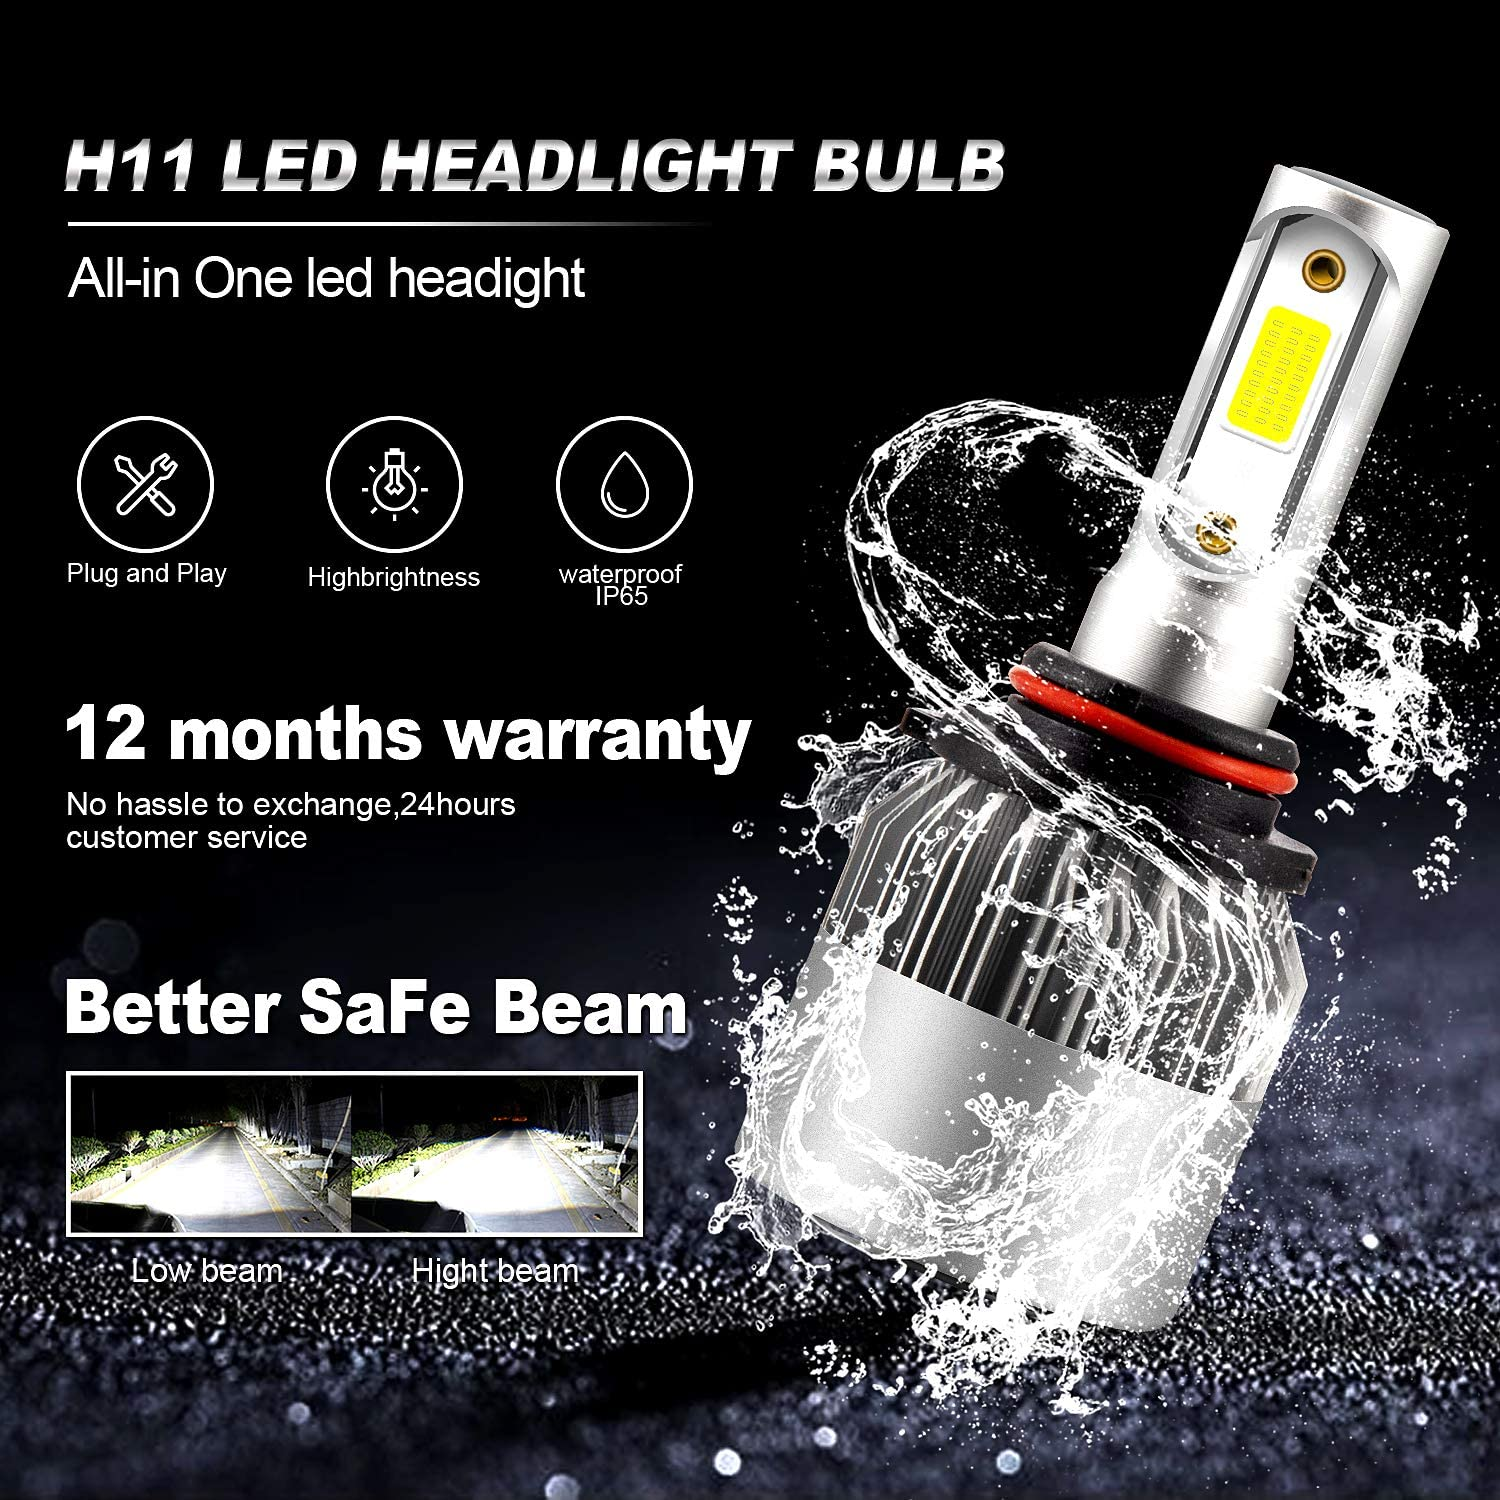 9005//HB3 High Beam 9006//HB4 Low Beam Combo LED Light Bulb Conversion Kit Xenon White 6500K SZFLWA X-S2 Series Headlight With Control Driver